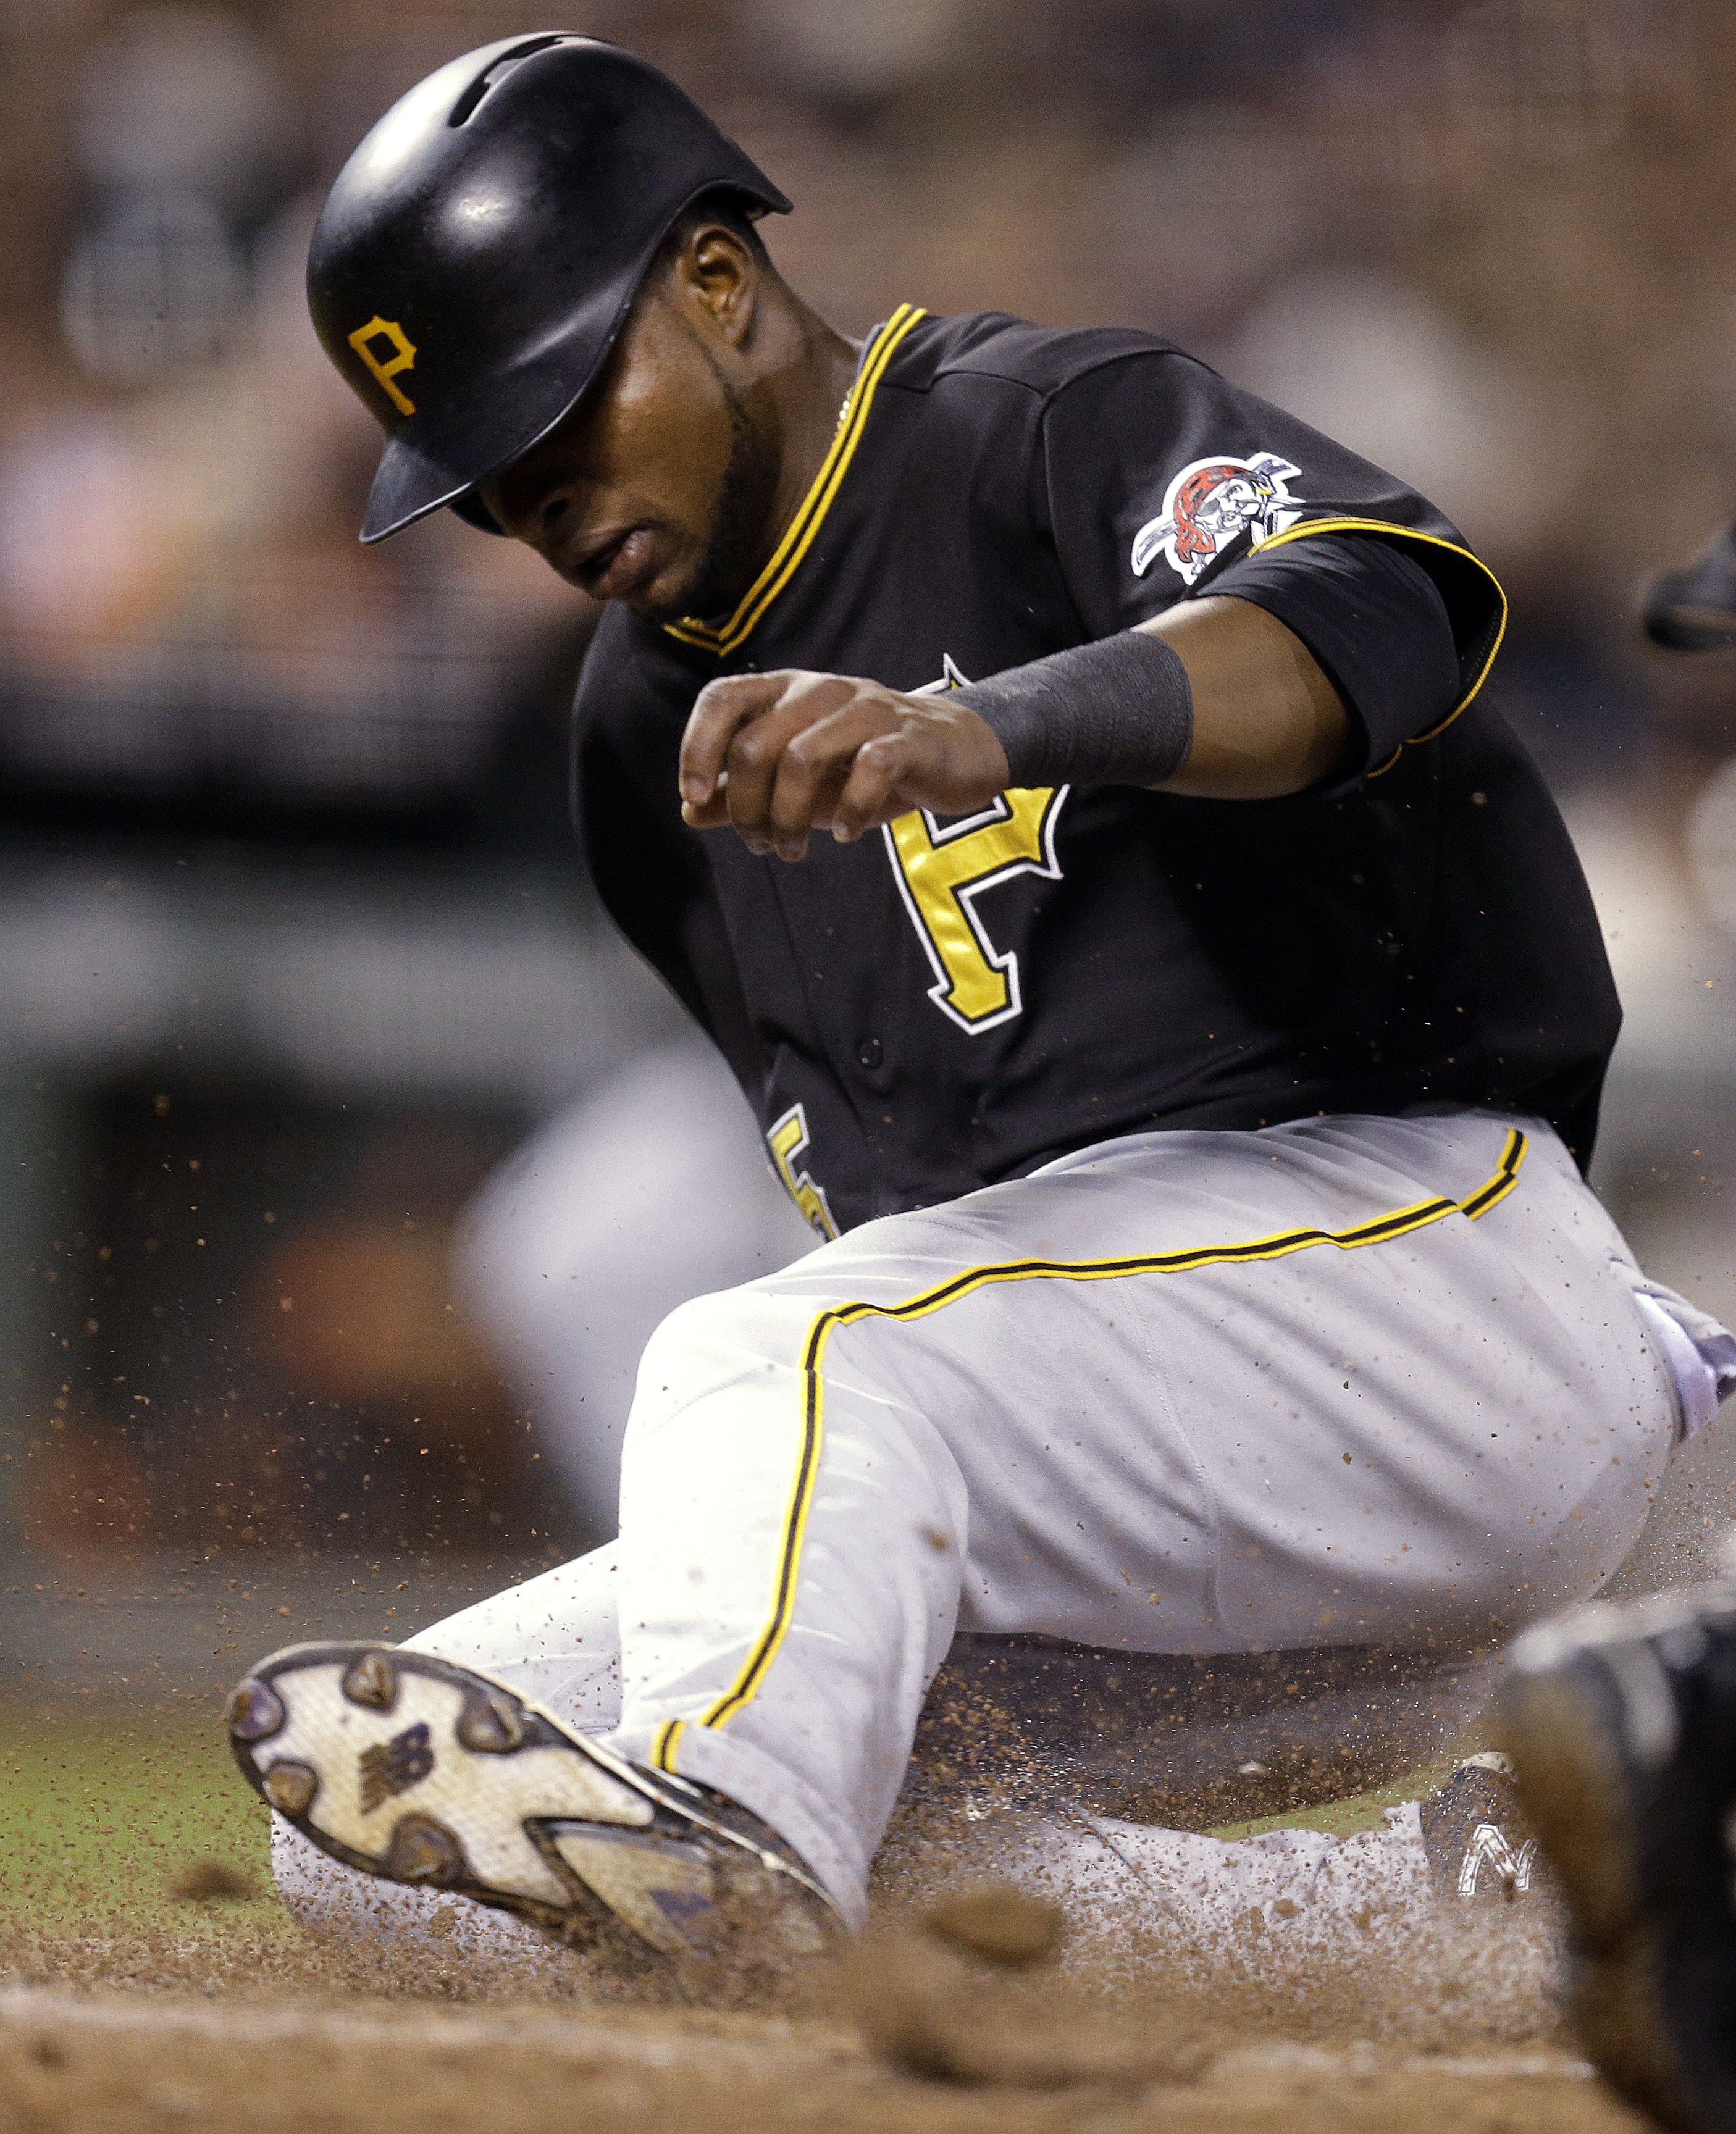 Pittsburgh Pirates' Gregory Polanco slides to score against the San Francisco Giants during the sixth inning of a baseball game Tuesday, June 2, 2015, in San Francisco. Polanco scored on a hit by Andrew McCutchen. (AP Photo/Ben Margot)